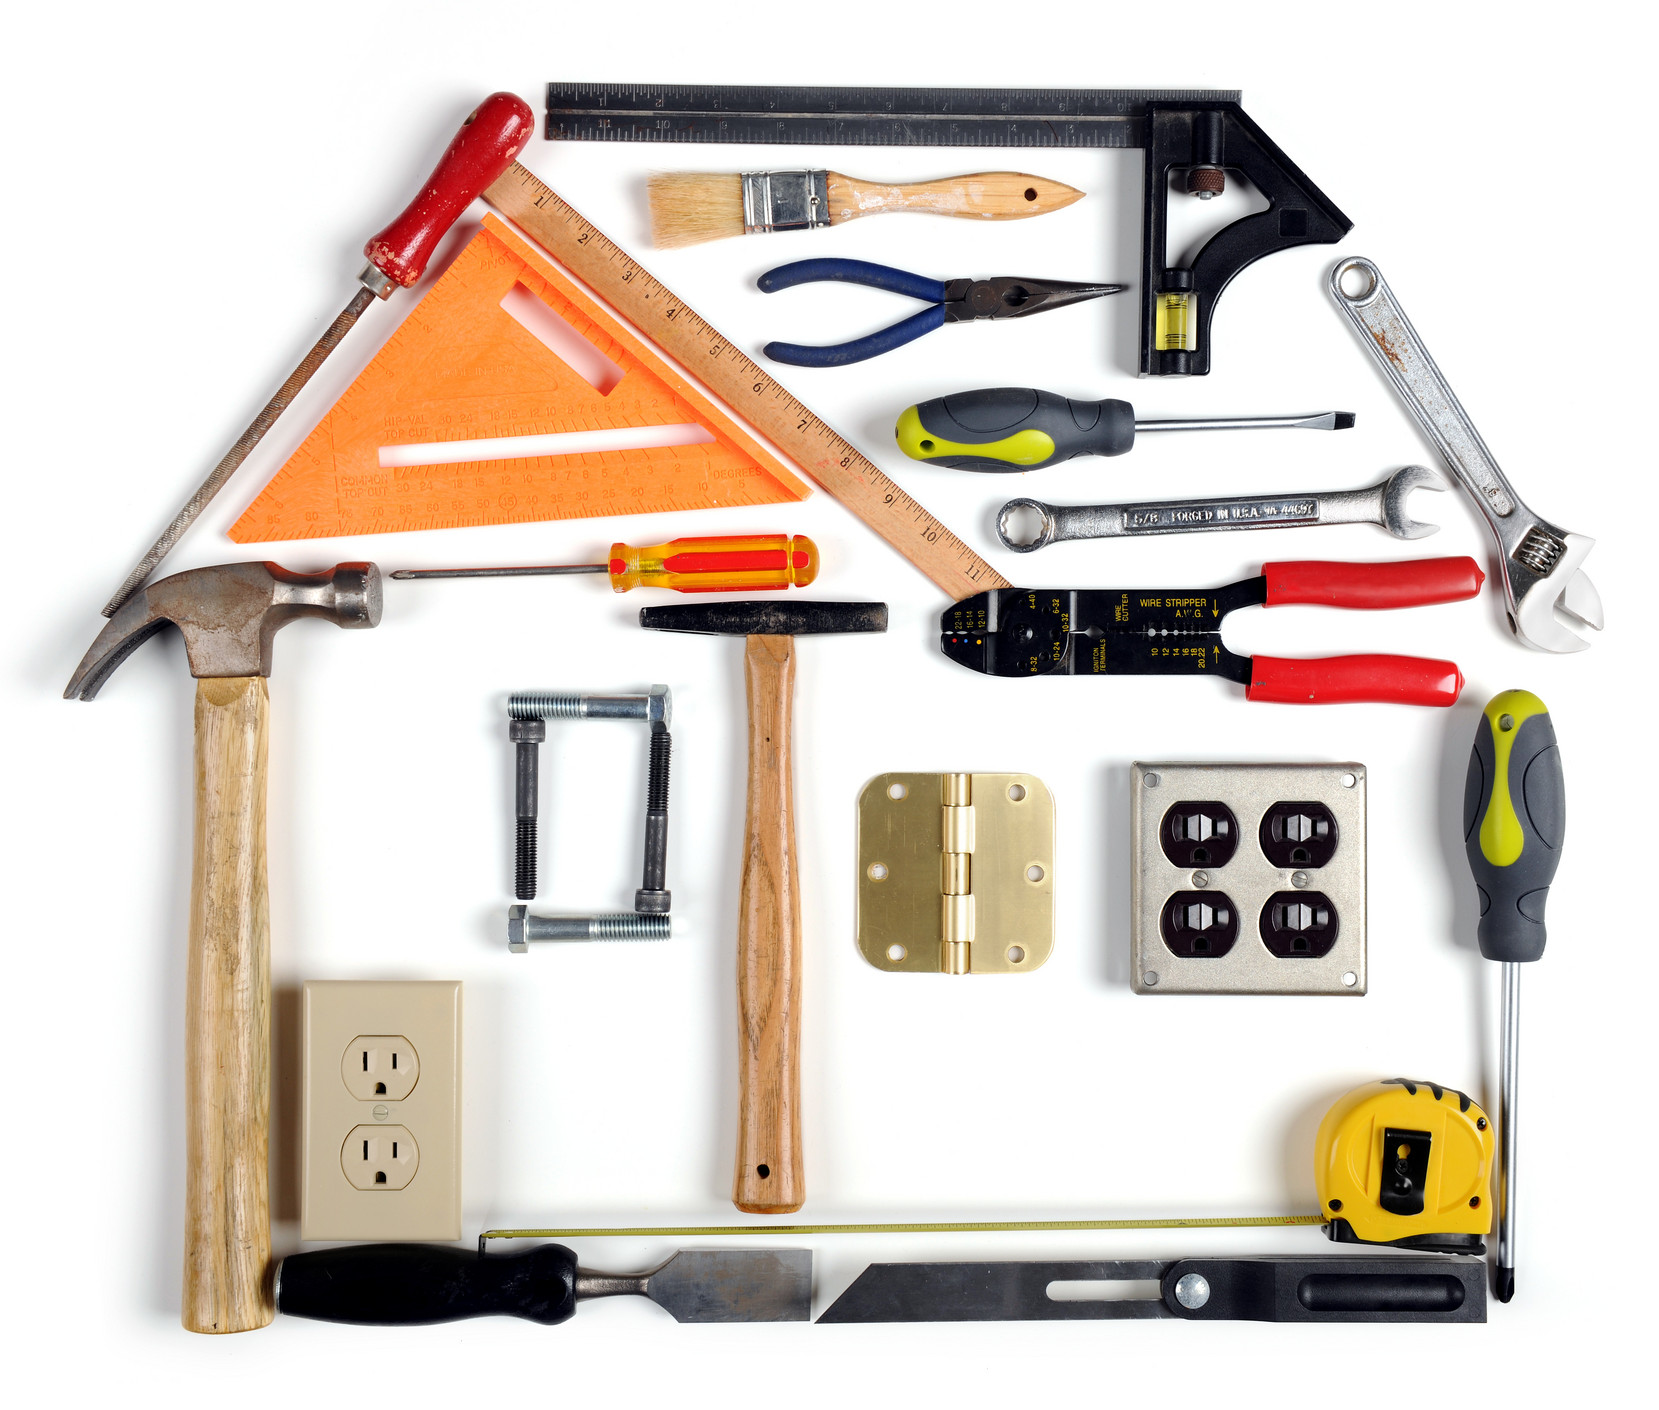 gift idea for home renovations-tools image-quinju.com